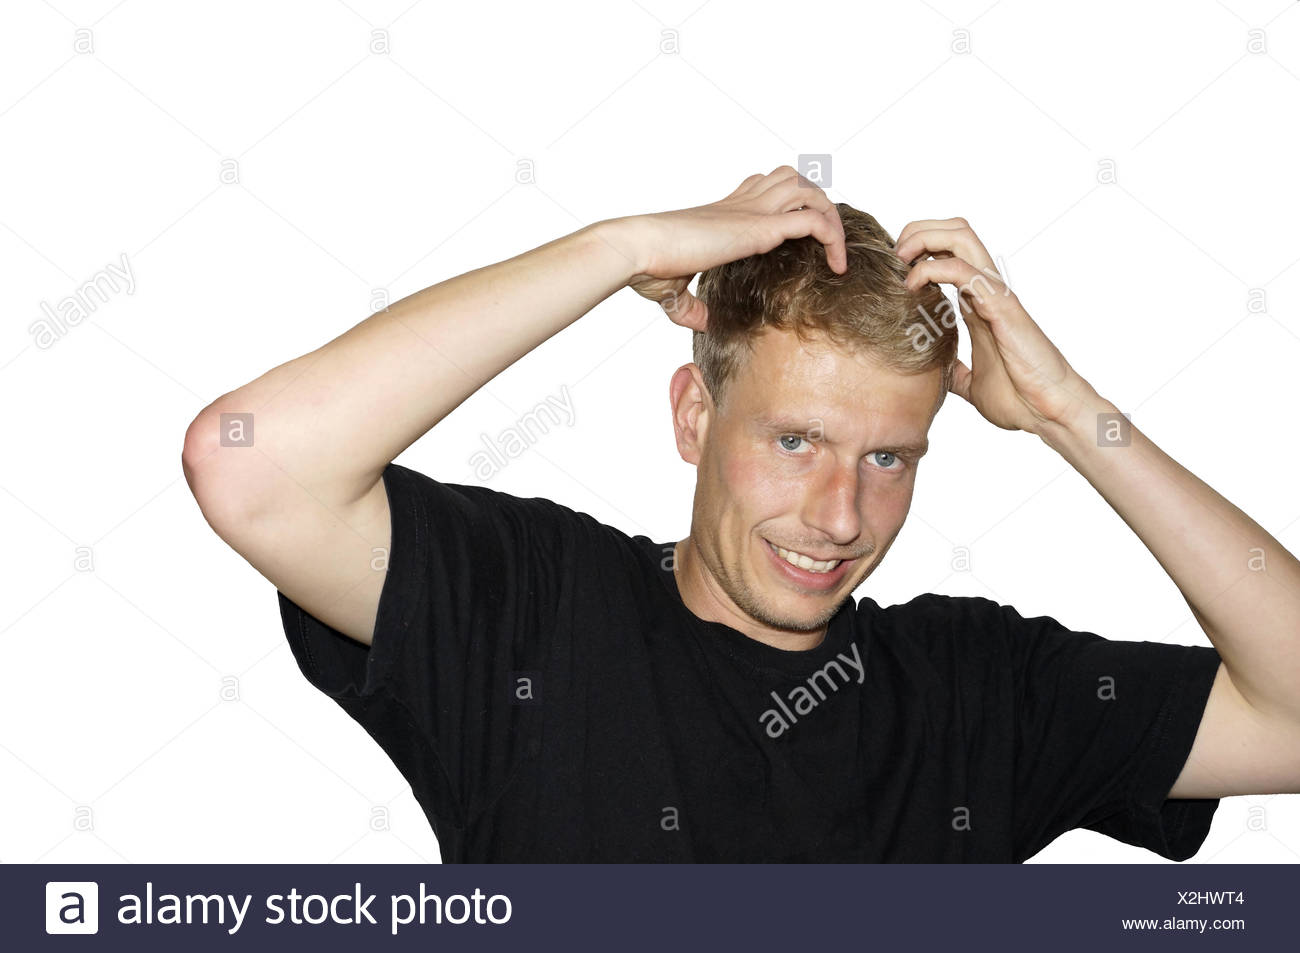 Lice? - To fight hair Stock Photo